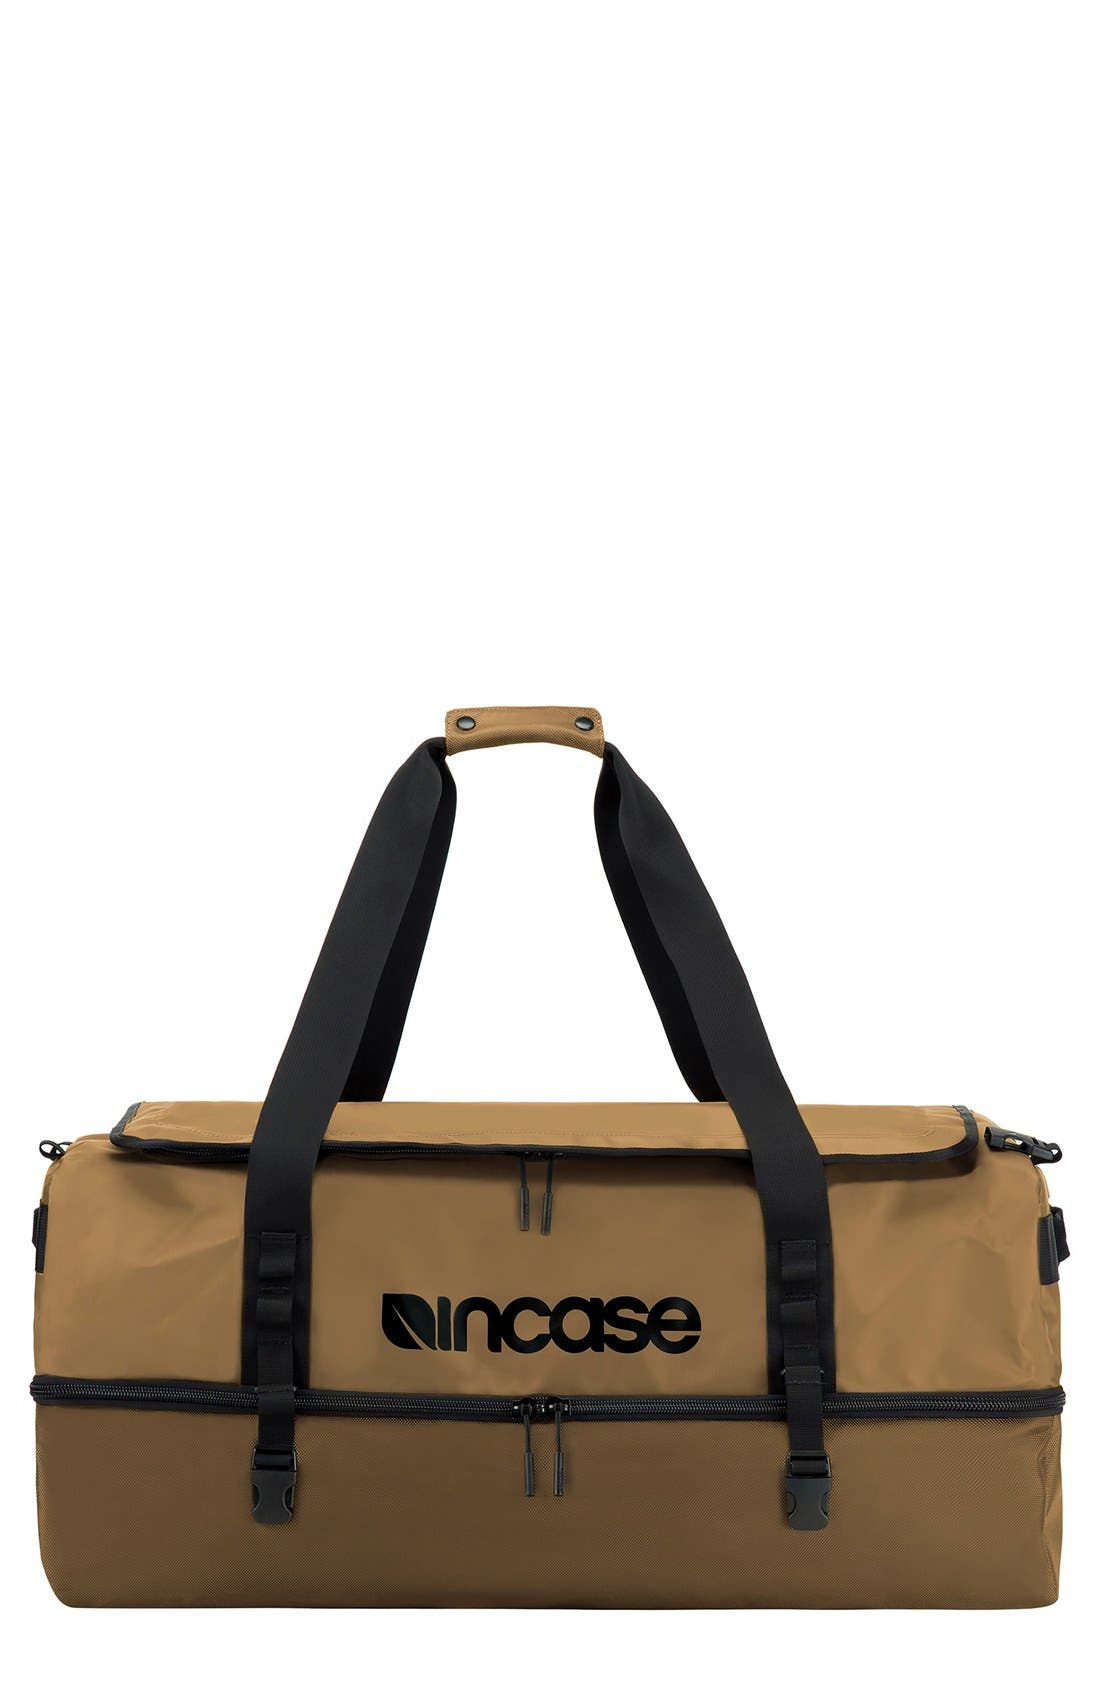 Incase Designs TRACTO Medium Split Convertible Duffel Bag